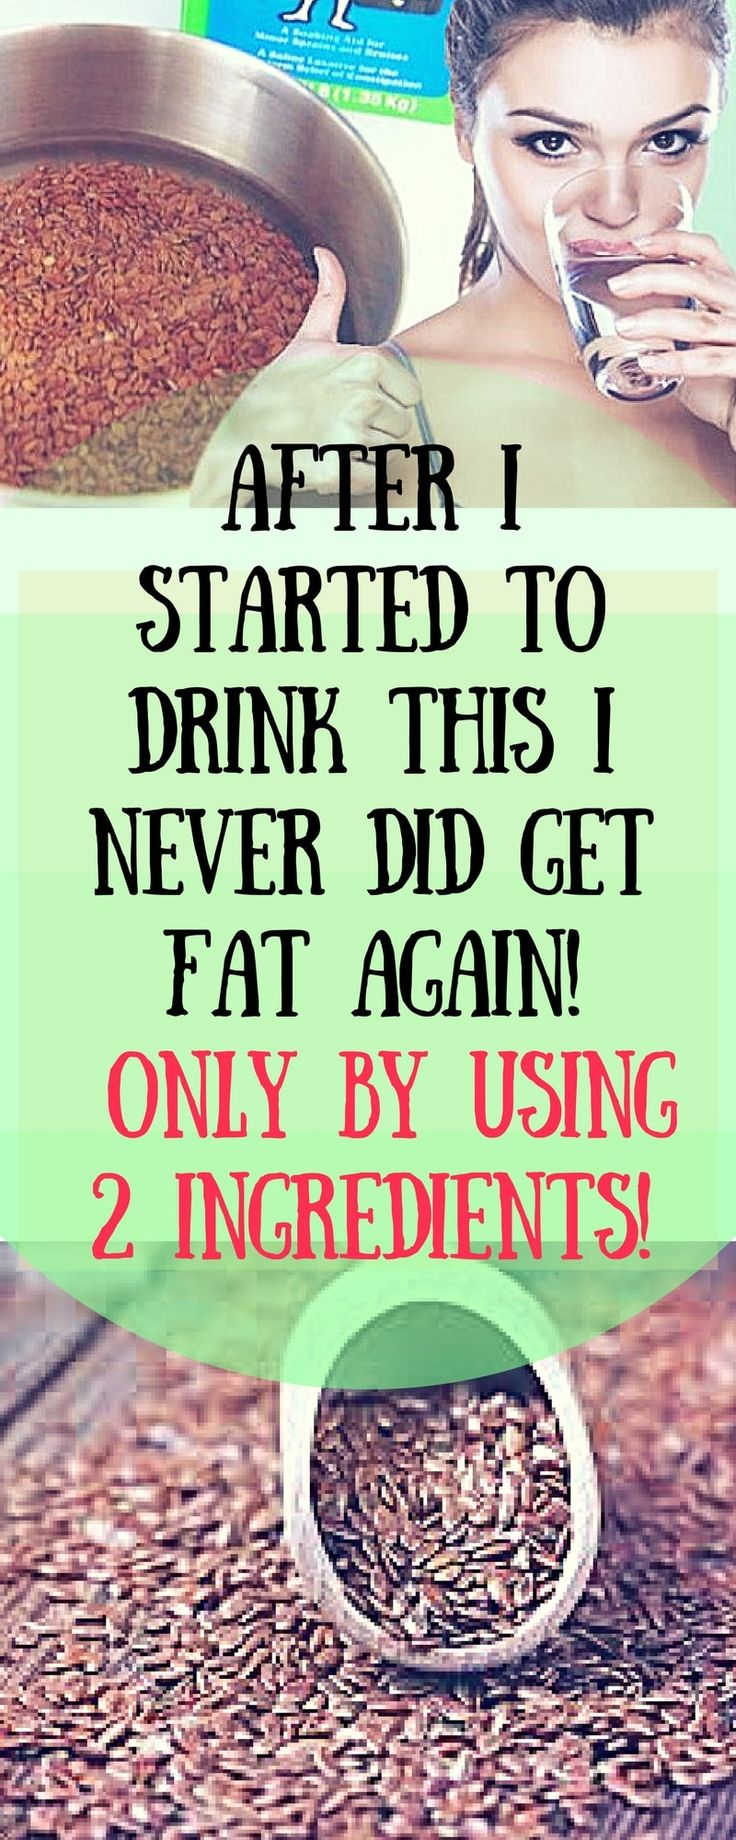 #drink #weight #loss #recipe #fat #remedy